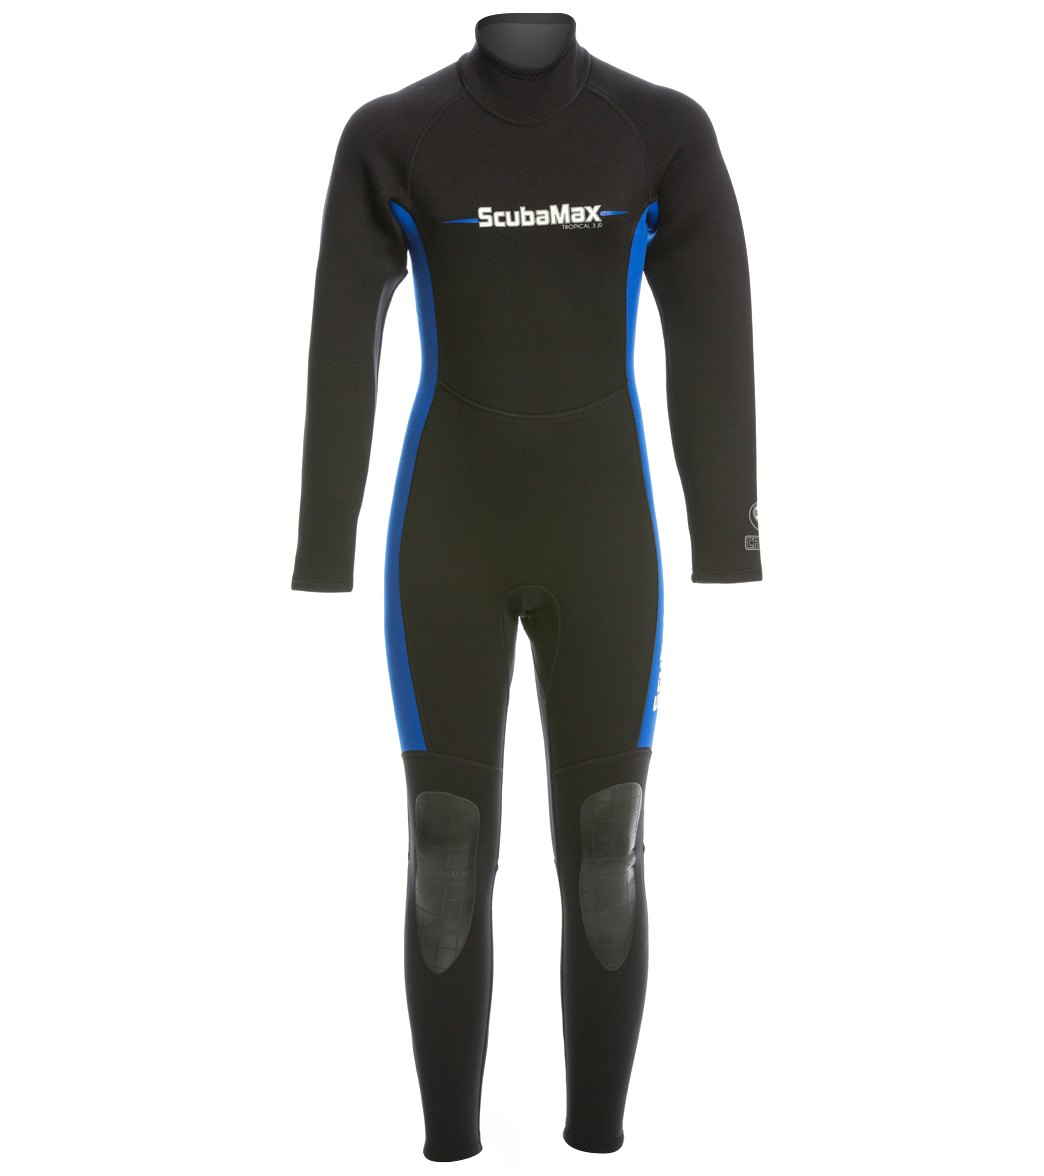 ScubaMax Kids 3mm Neoprene Full Wetsuit at SwimOutlet.com - Free Shipping